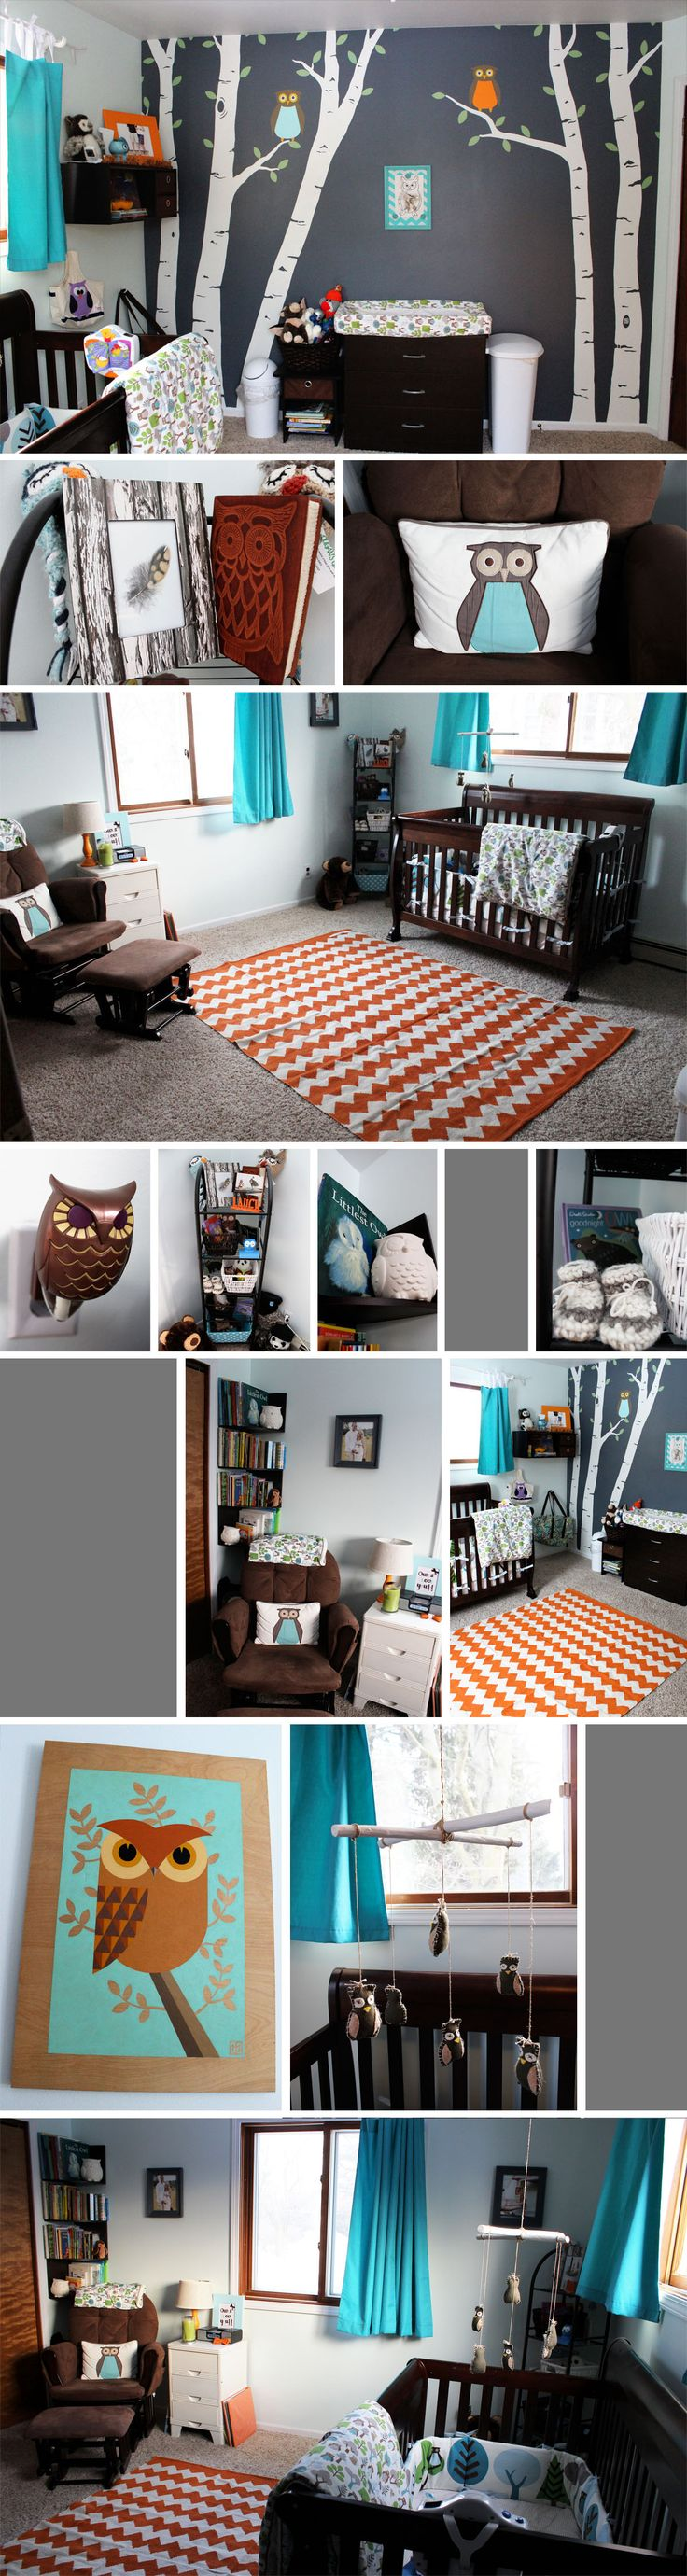 best  owl bedding ideas on pinterest  owl bedroom girls owl  - dwell studio bedding and accents